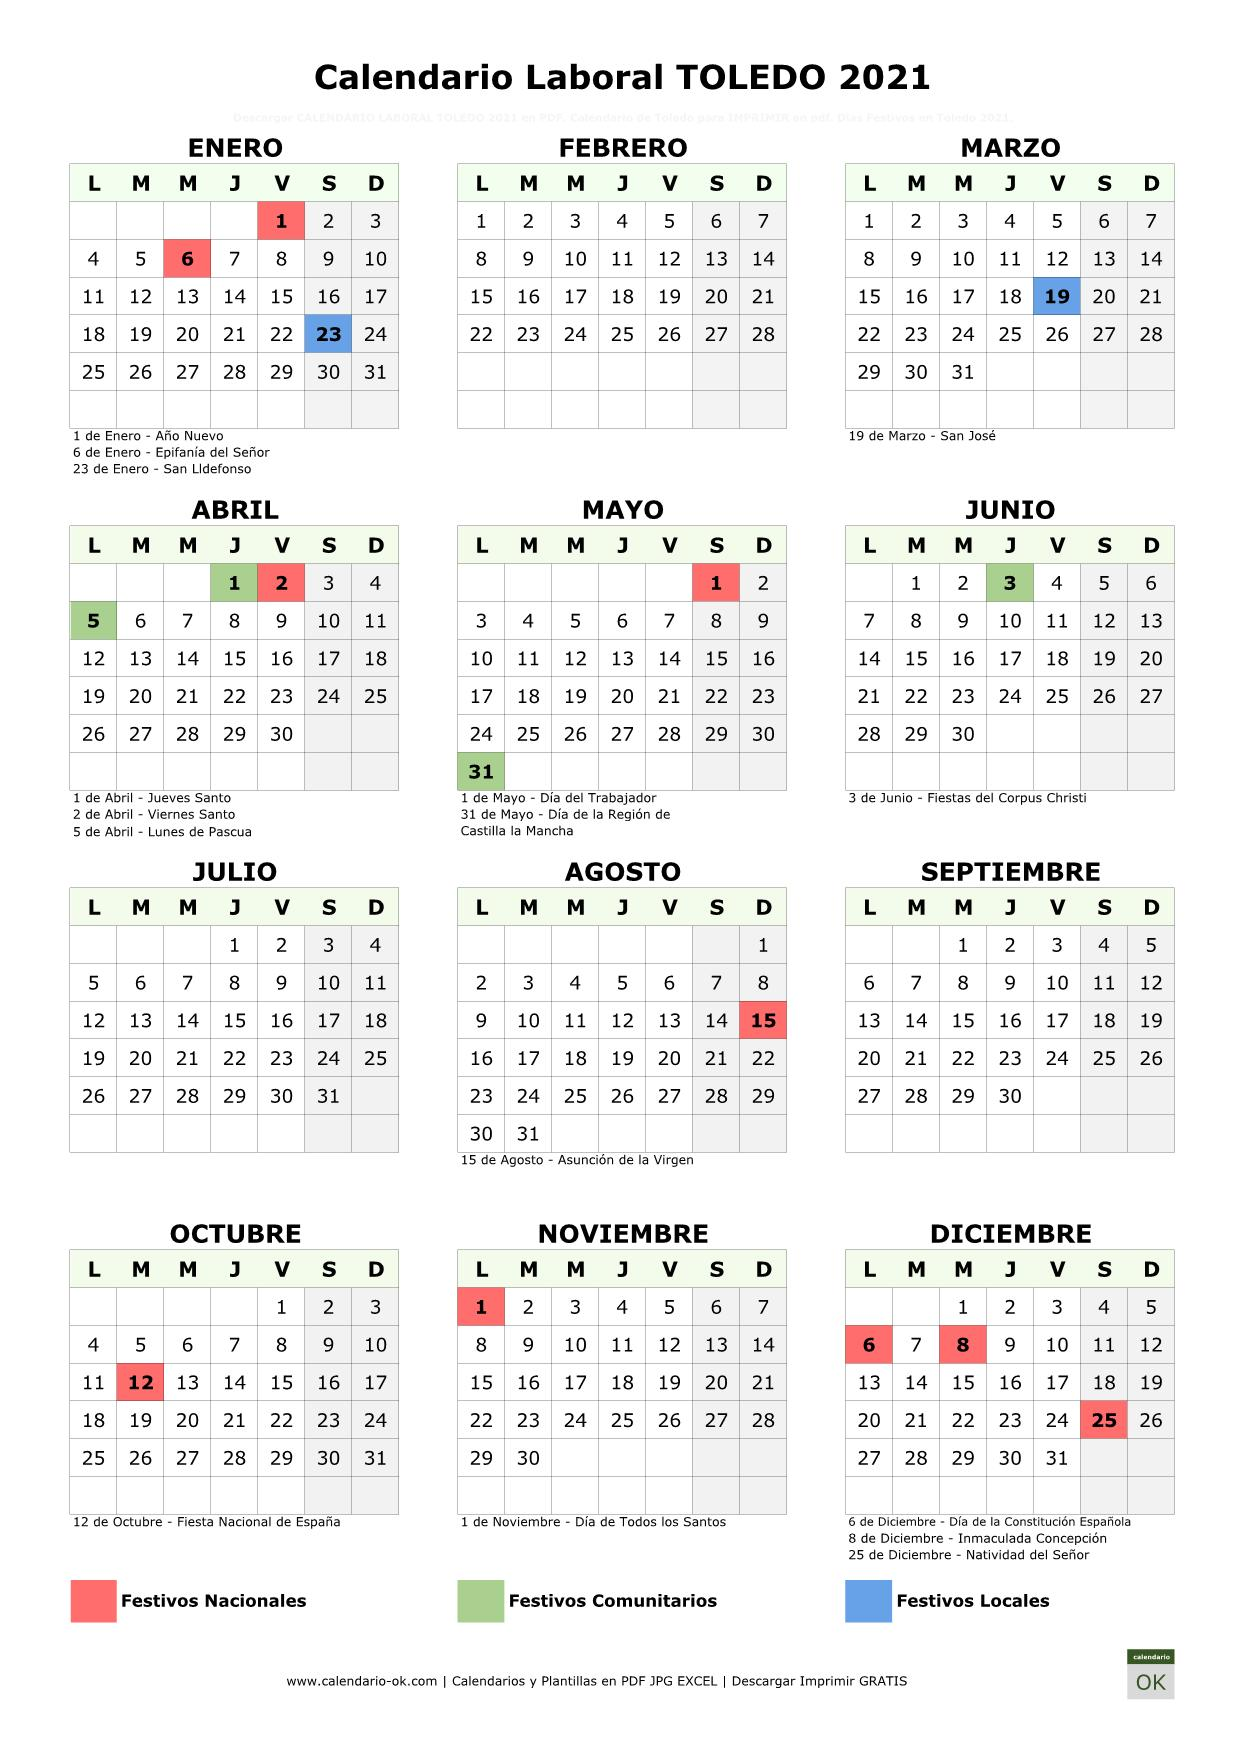 Calendario Laboral Toledo 2021 vertical